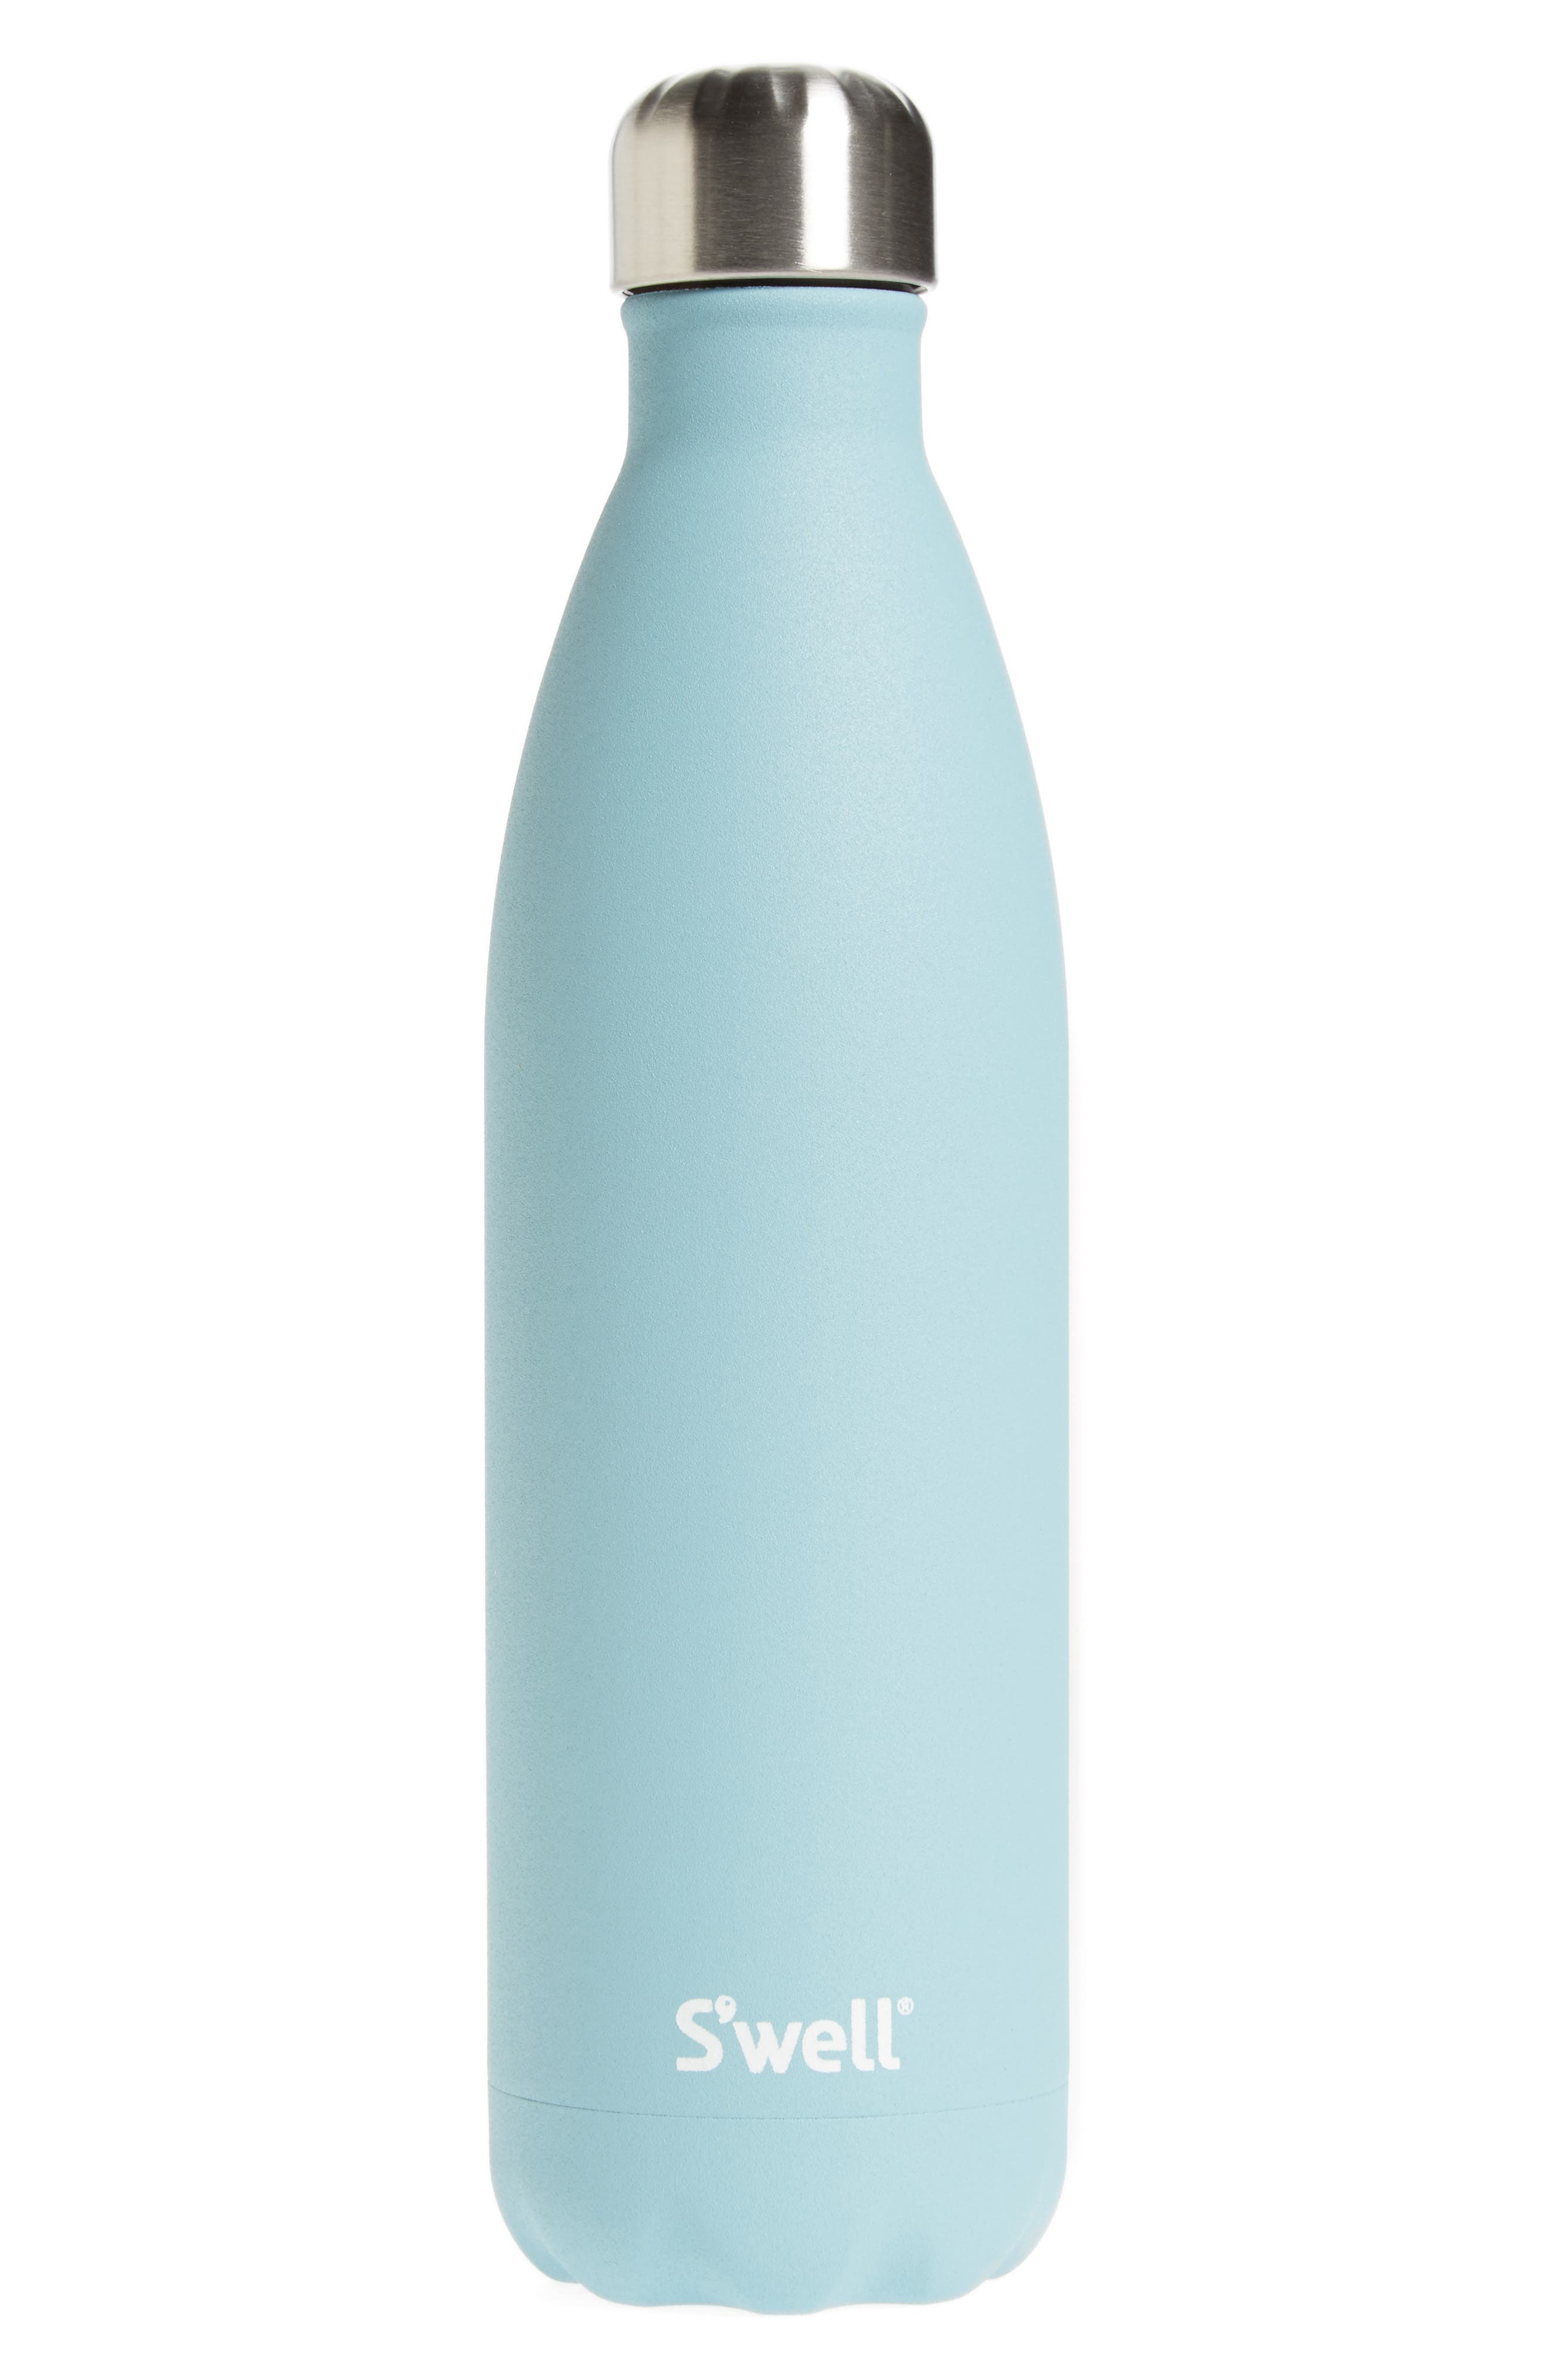 Main Image - S'well Stone Collection Aquamarine Insulated Stainless Steel Water Bottle